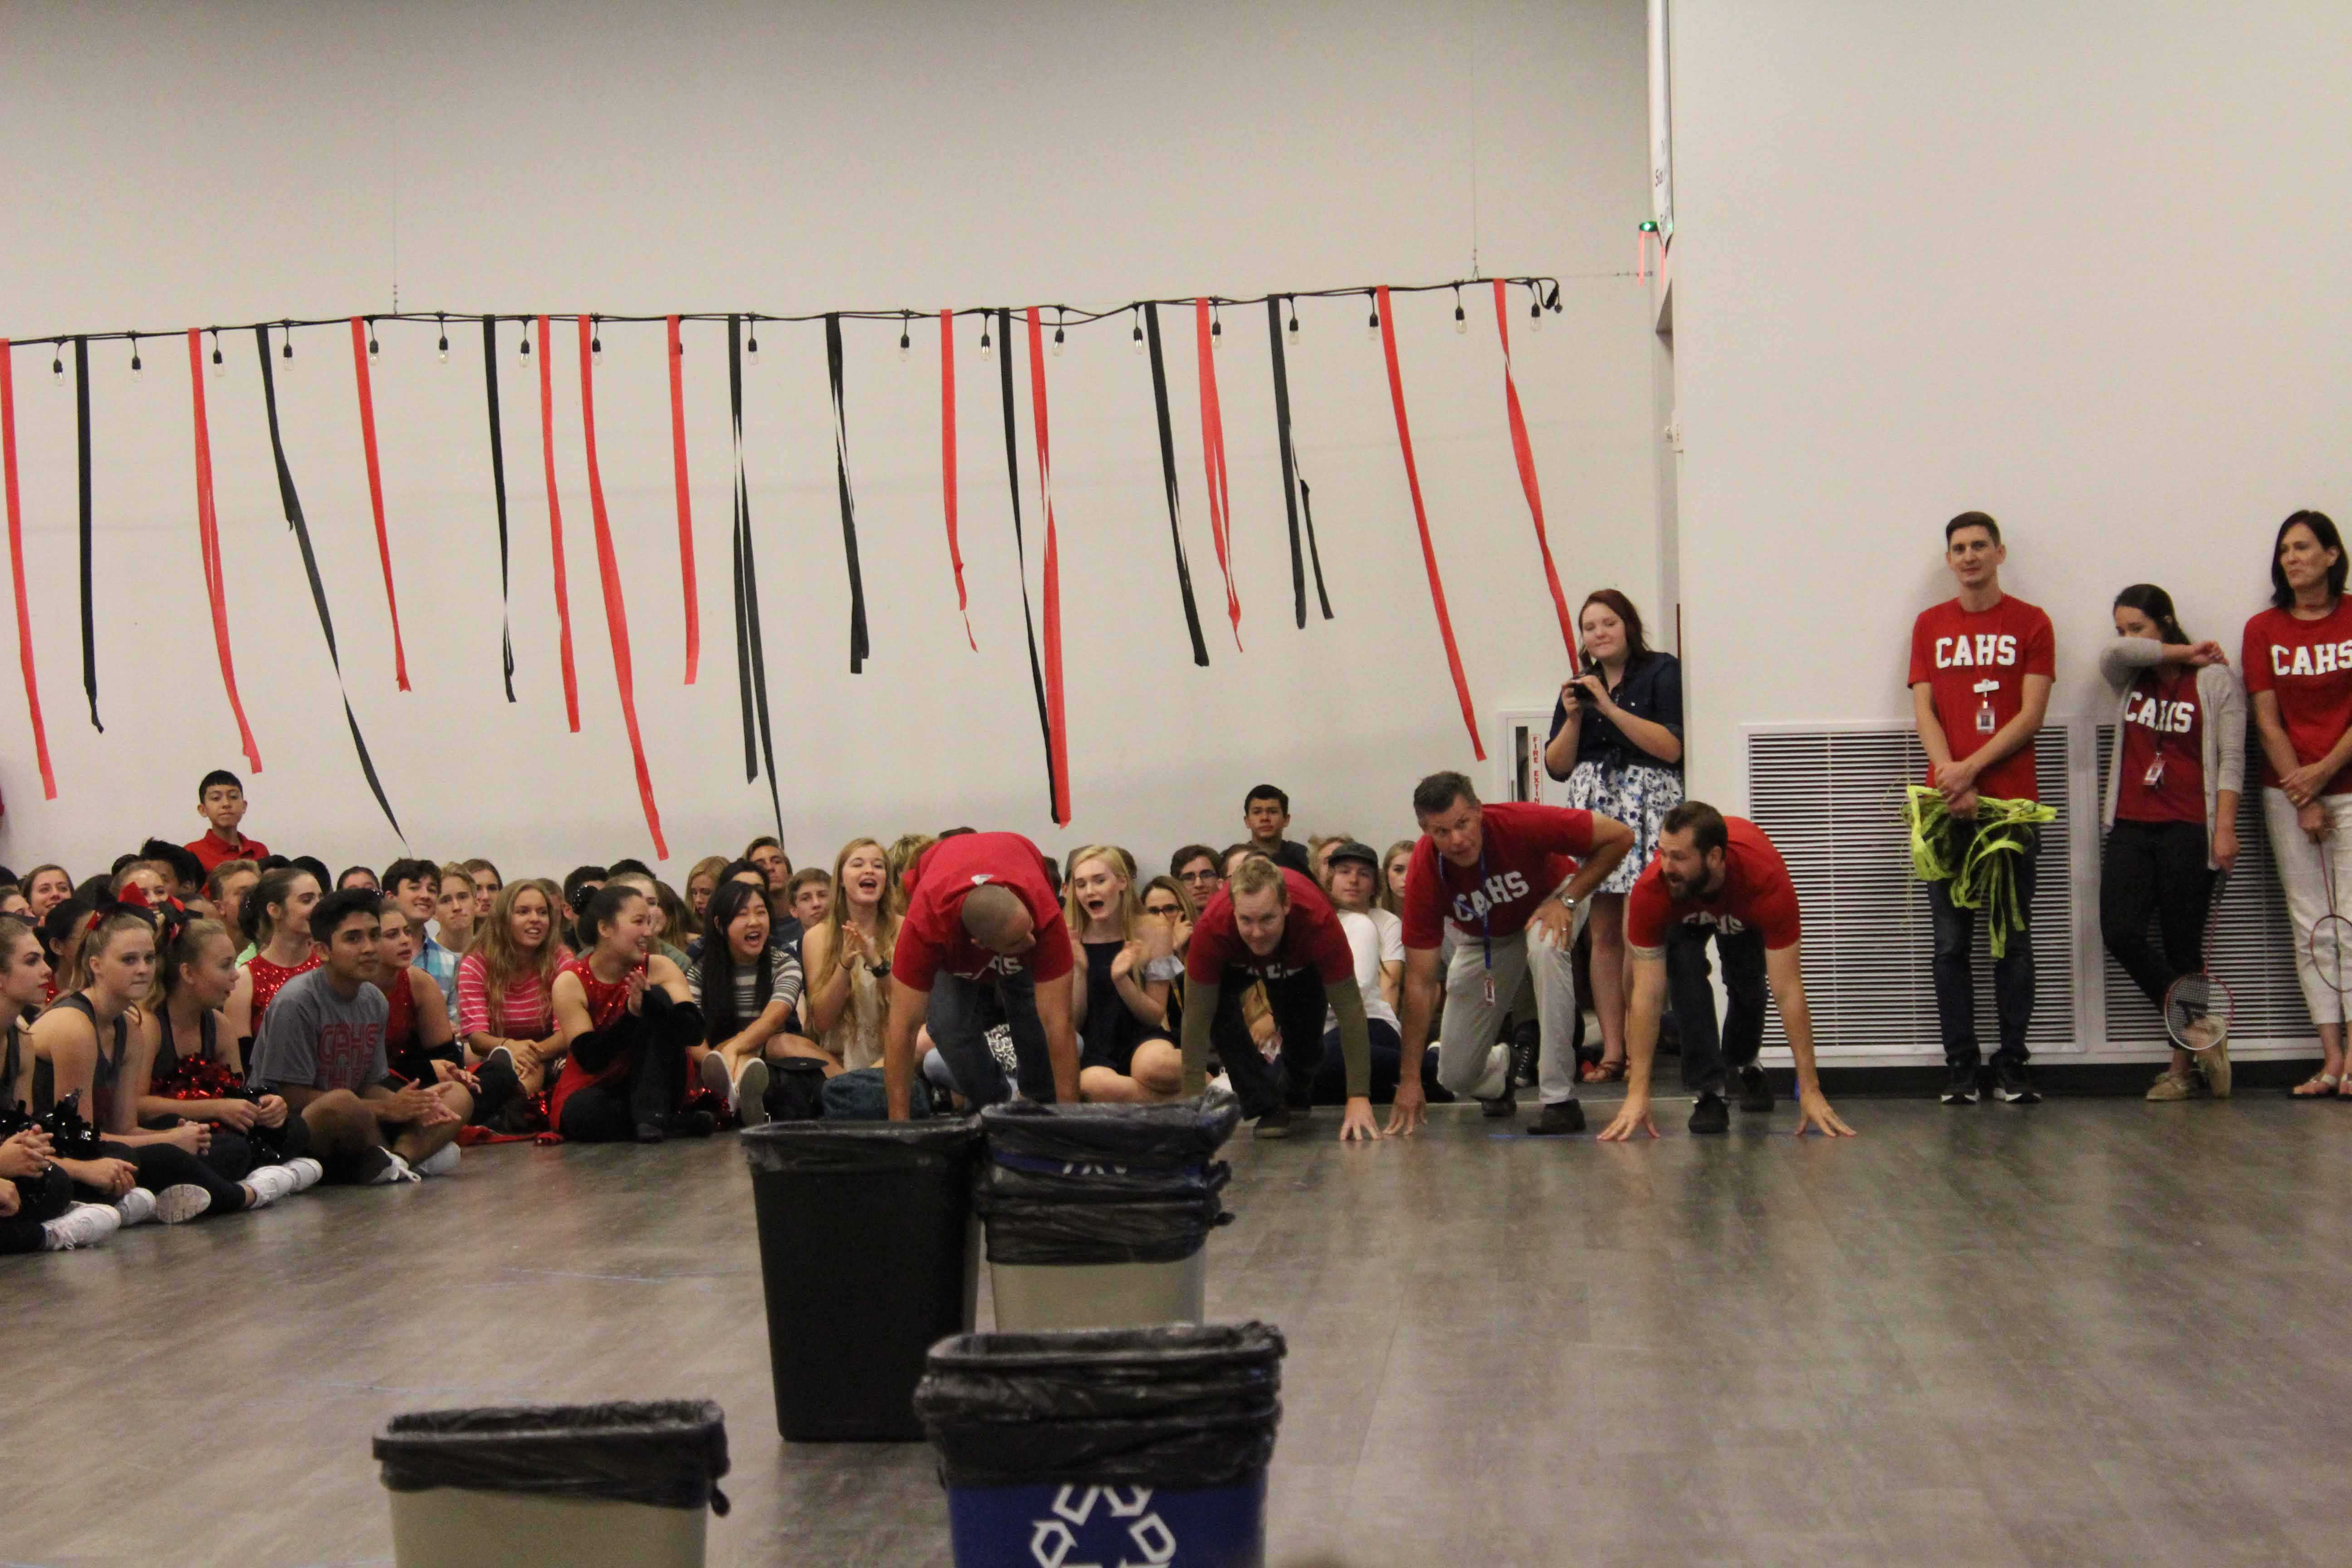 The+Social+Studies+Department+participates+in+a+trashcan-throwing+contest.+Photos+taken+by+Anastasia+Reimann.